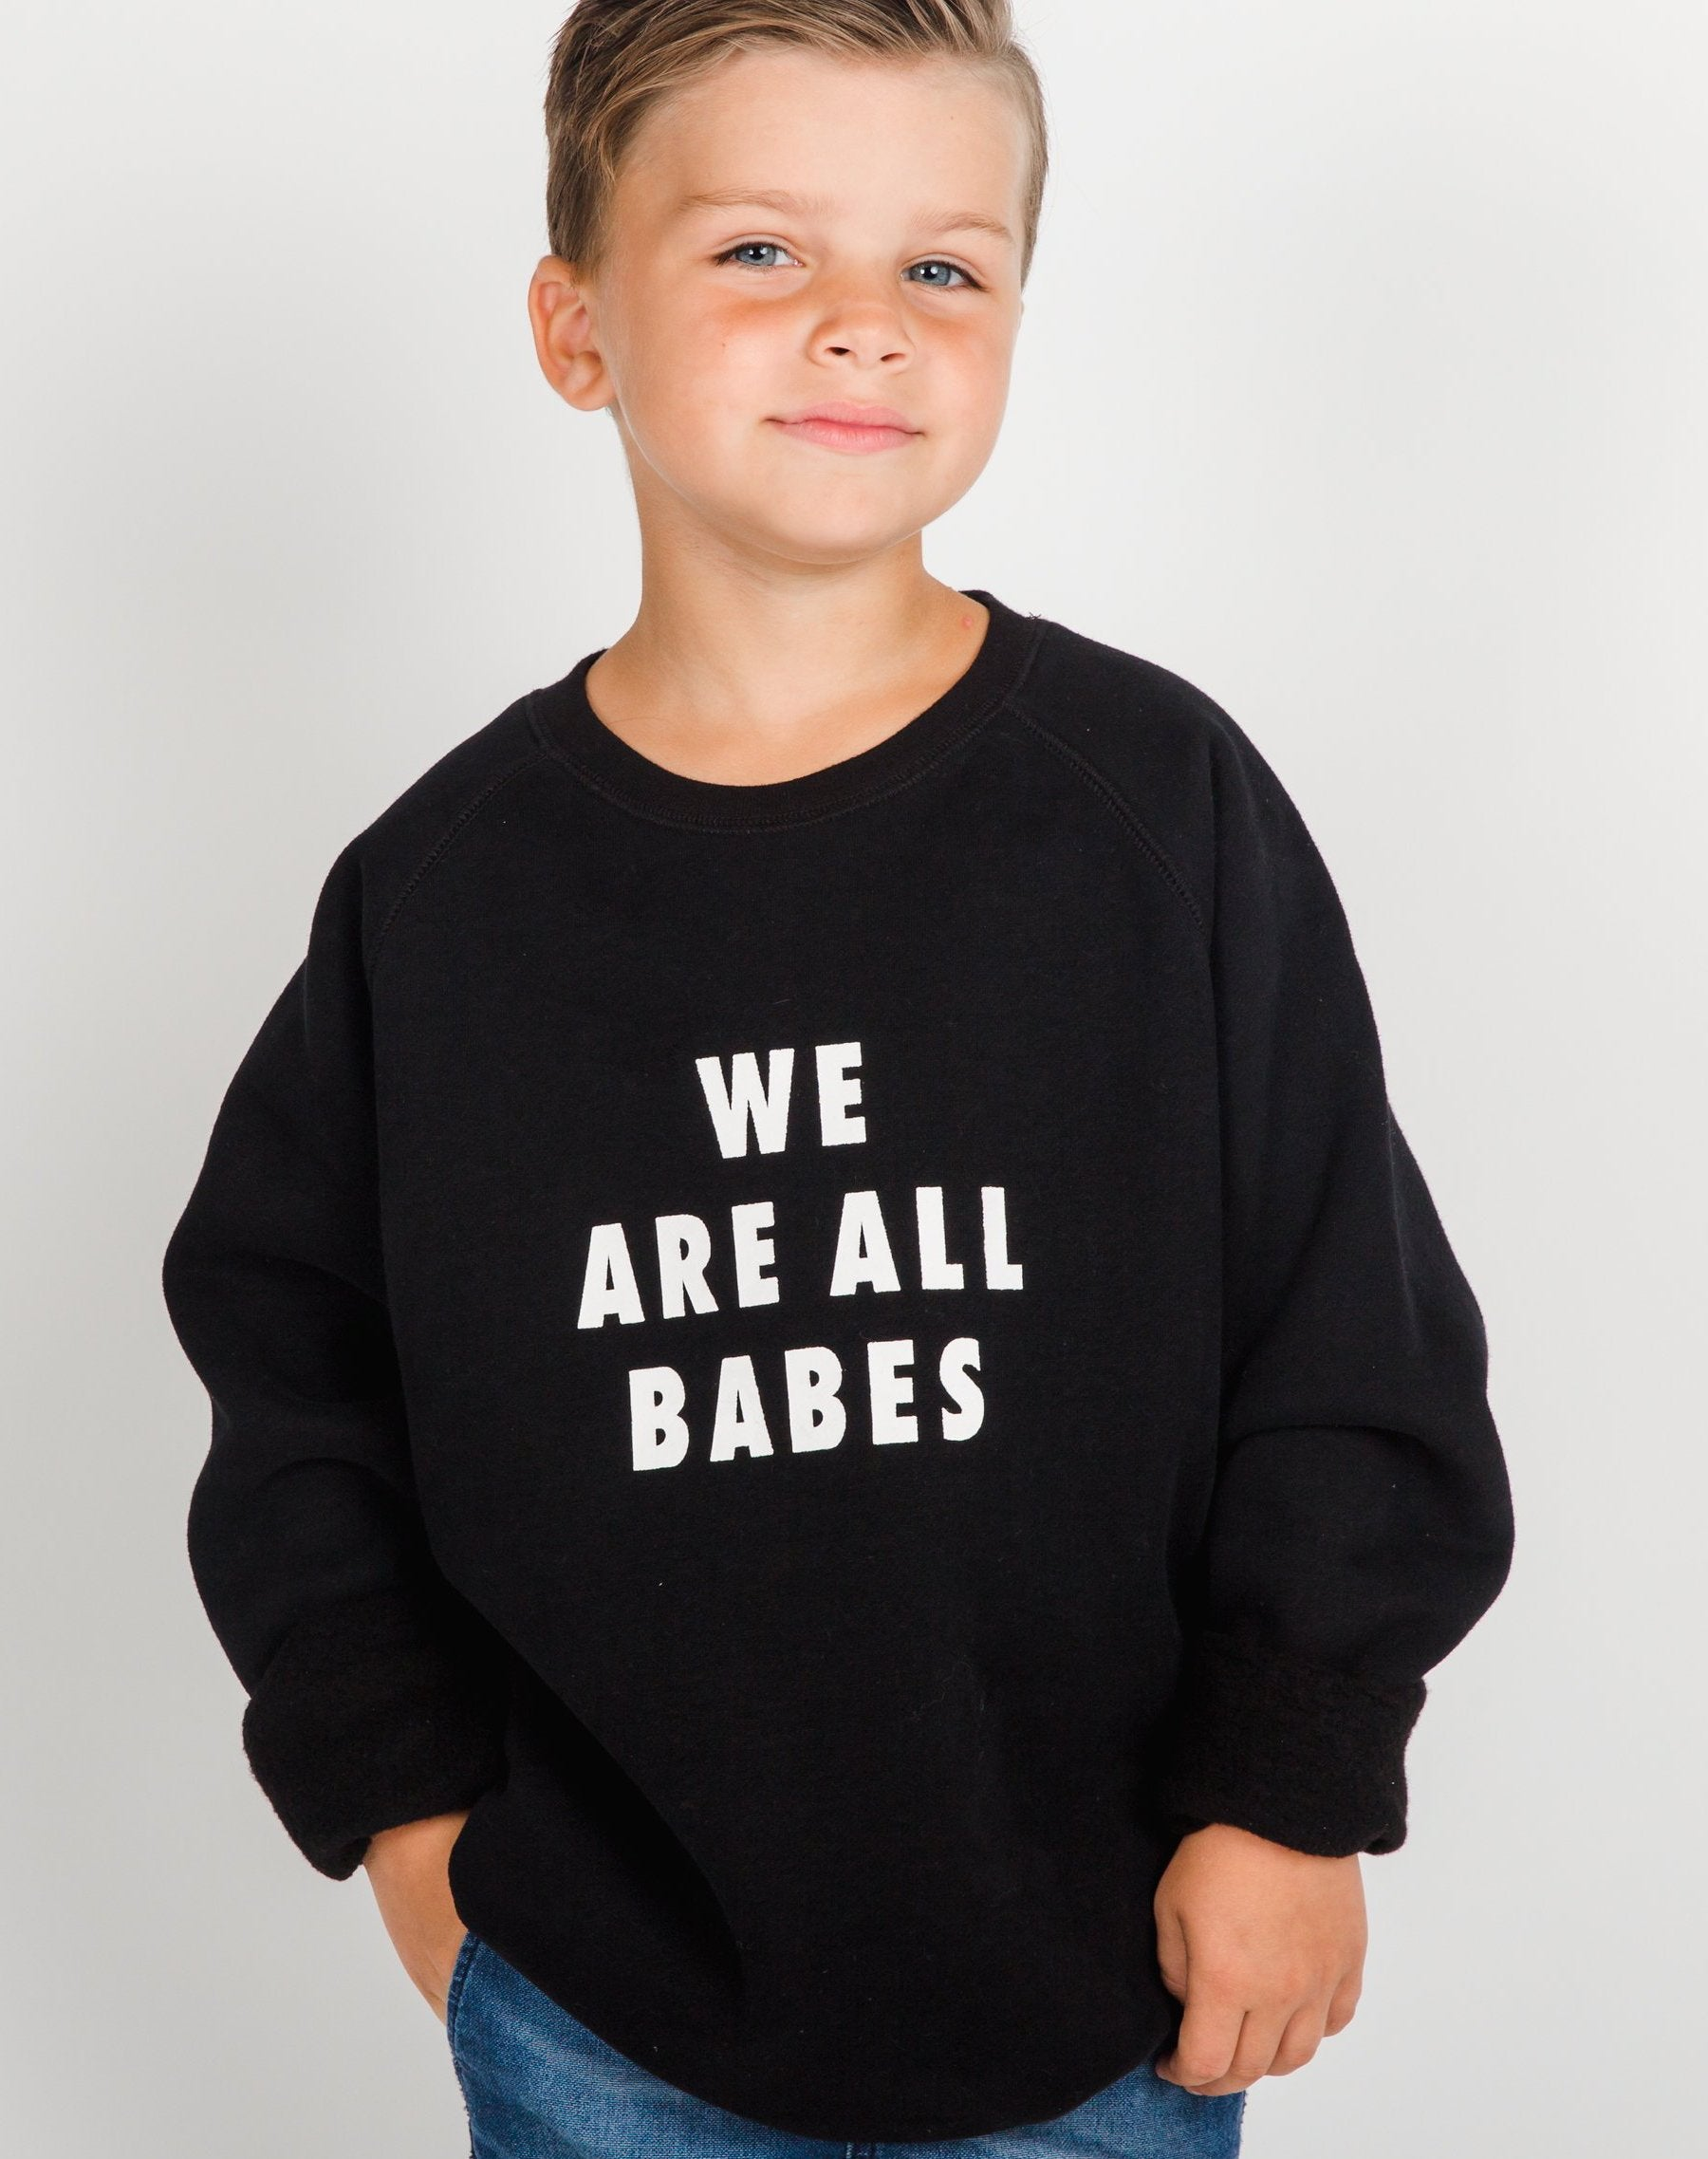 Photo of child 2 wearing the We Are All Babes Little Babes classic crew neck sweatshirt in black by Brunette the Label.